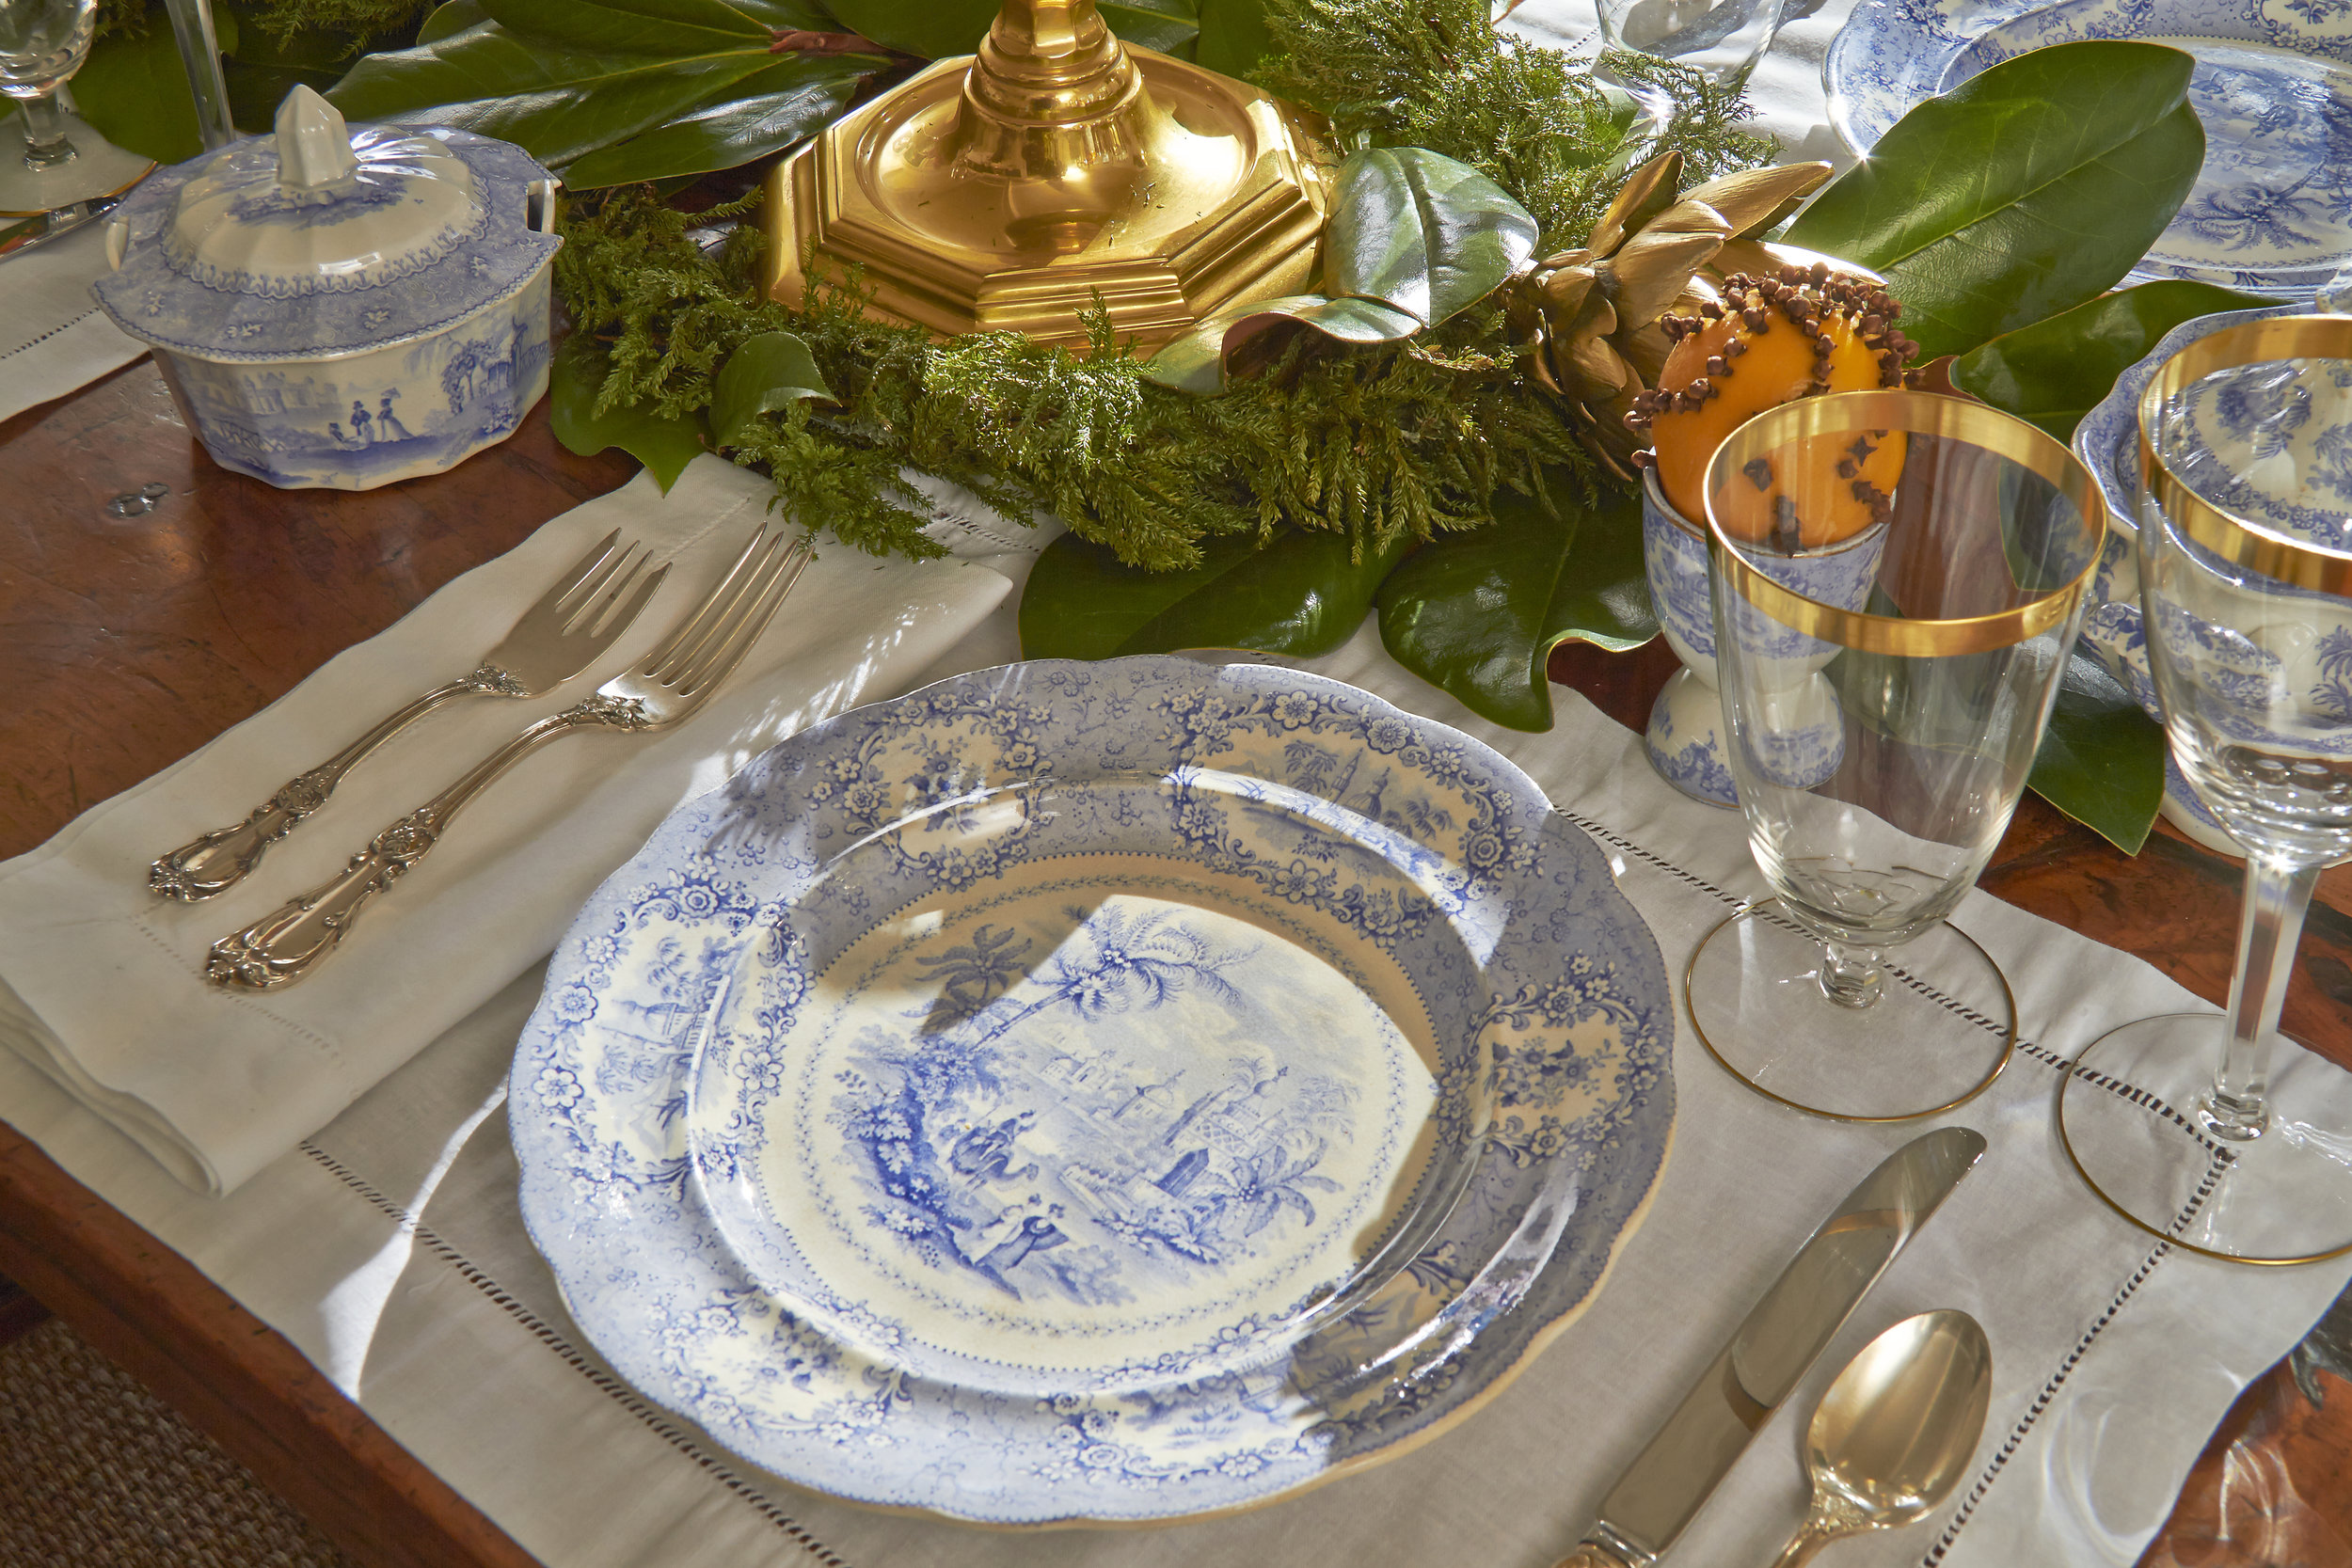 CTCG-HOLIDAY PLACE SETTING.jpg